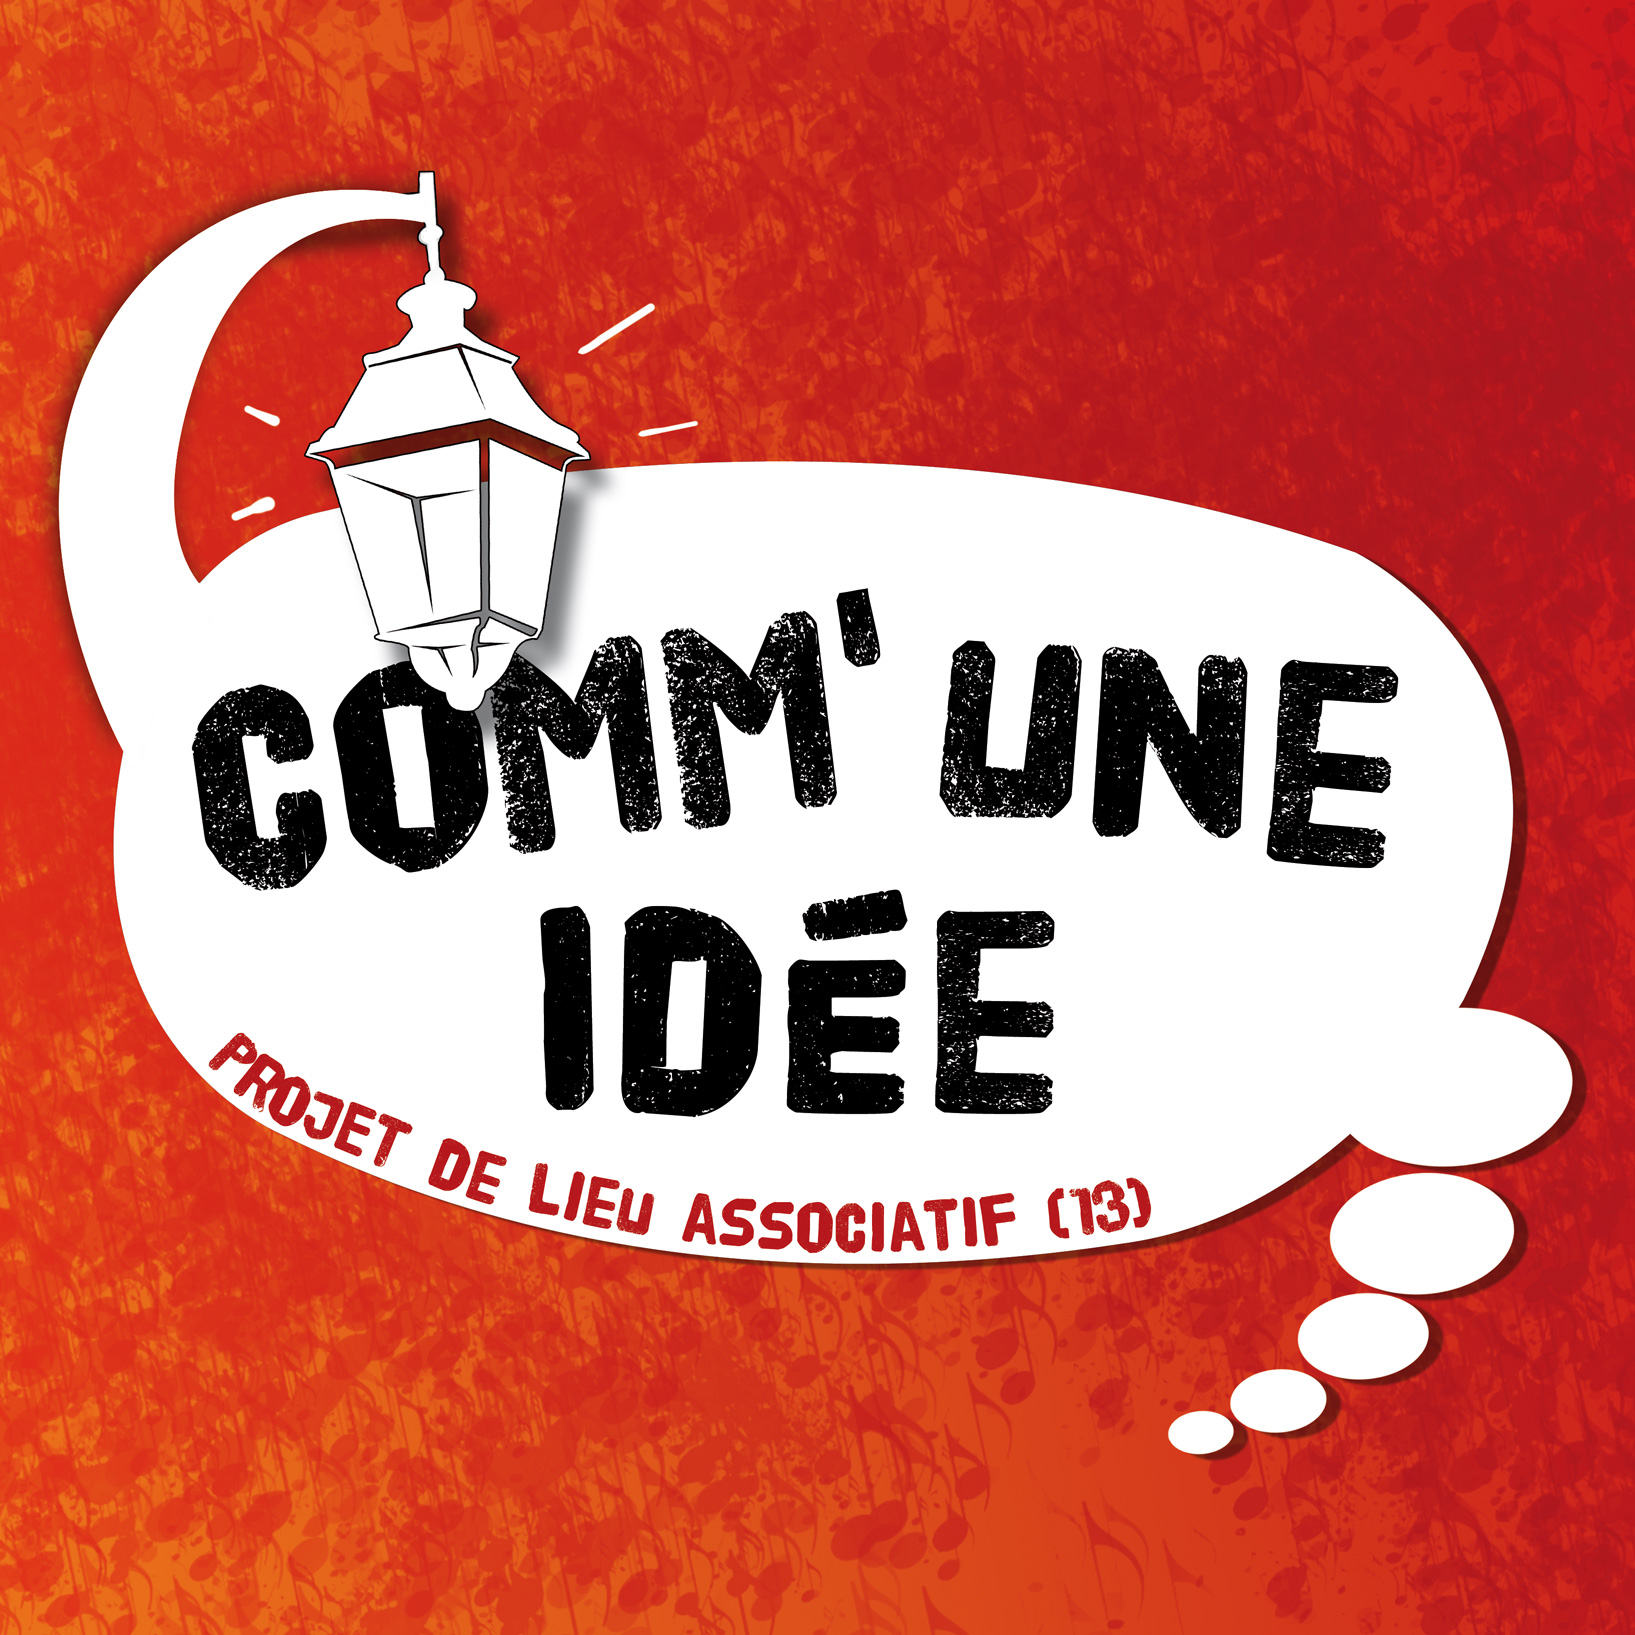 Association Communeidée